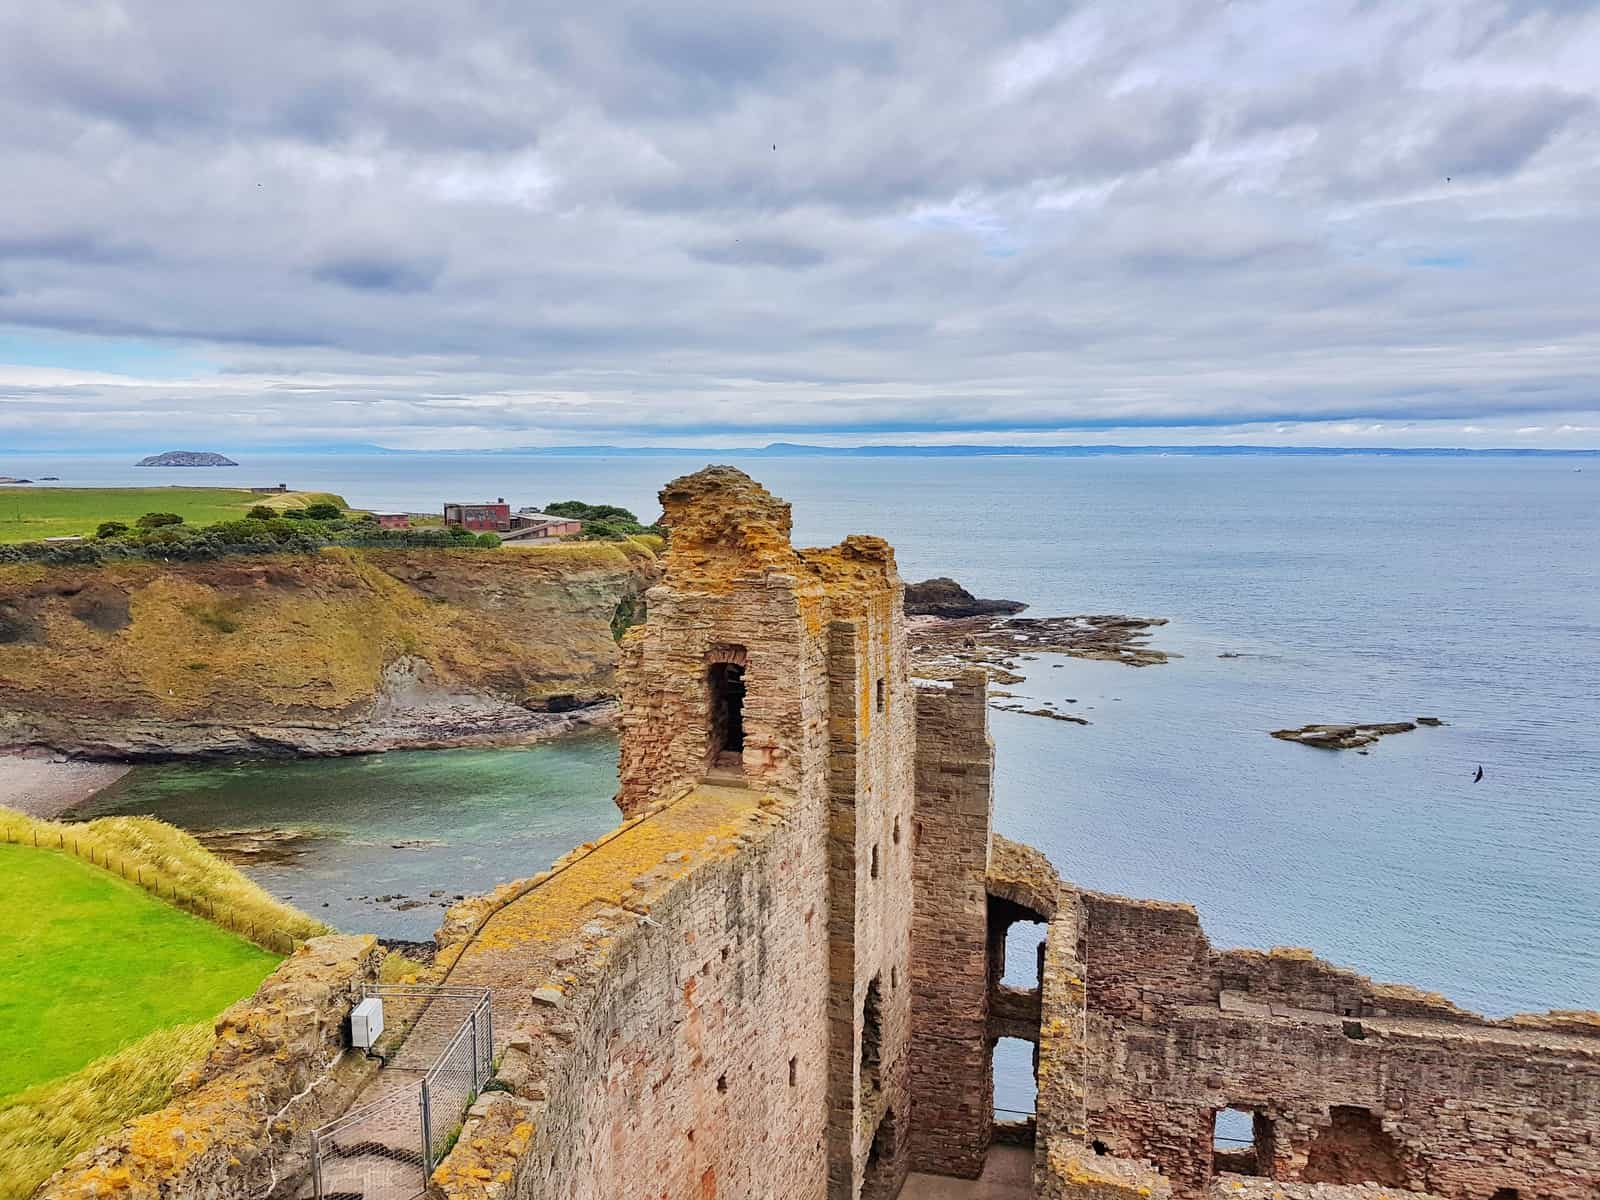 Tantallon Castle and Seacliff Beach East Lothian Scotland - view from tower